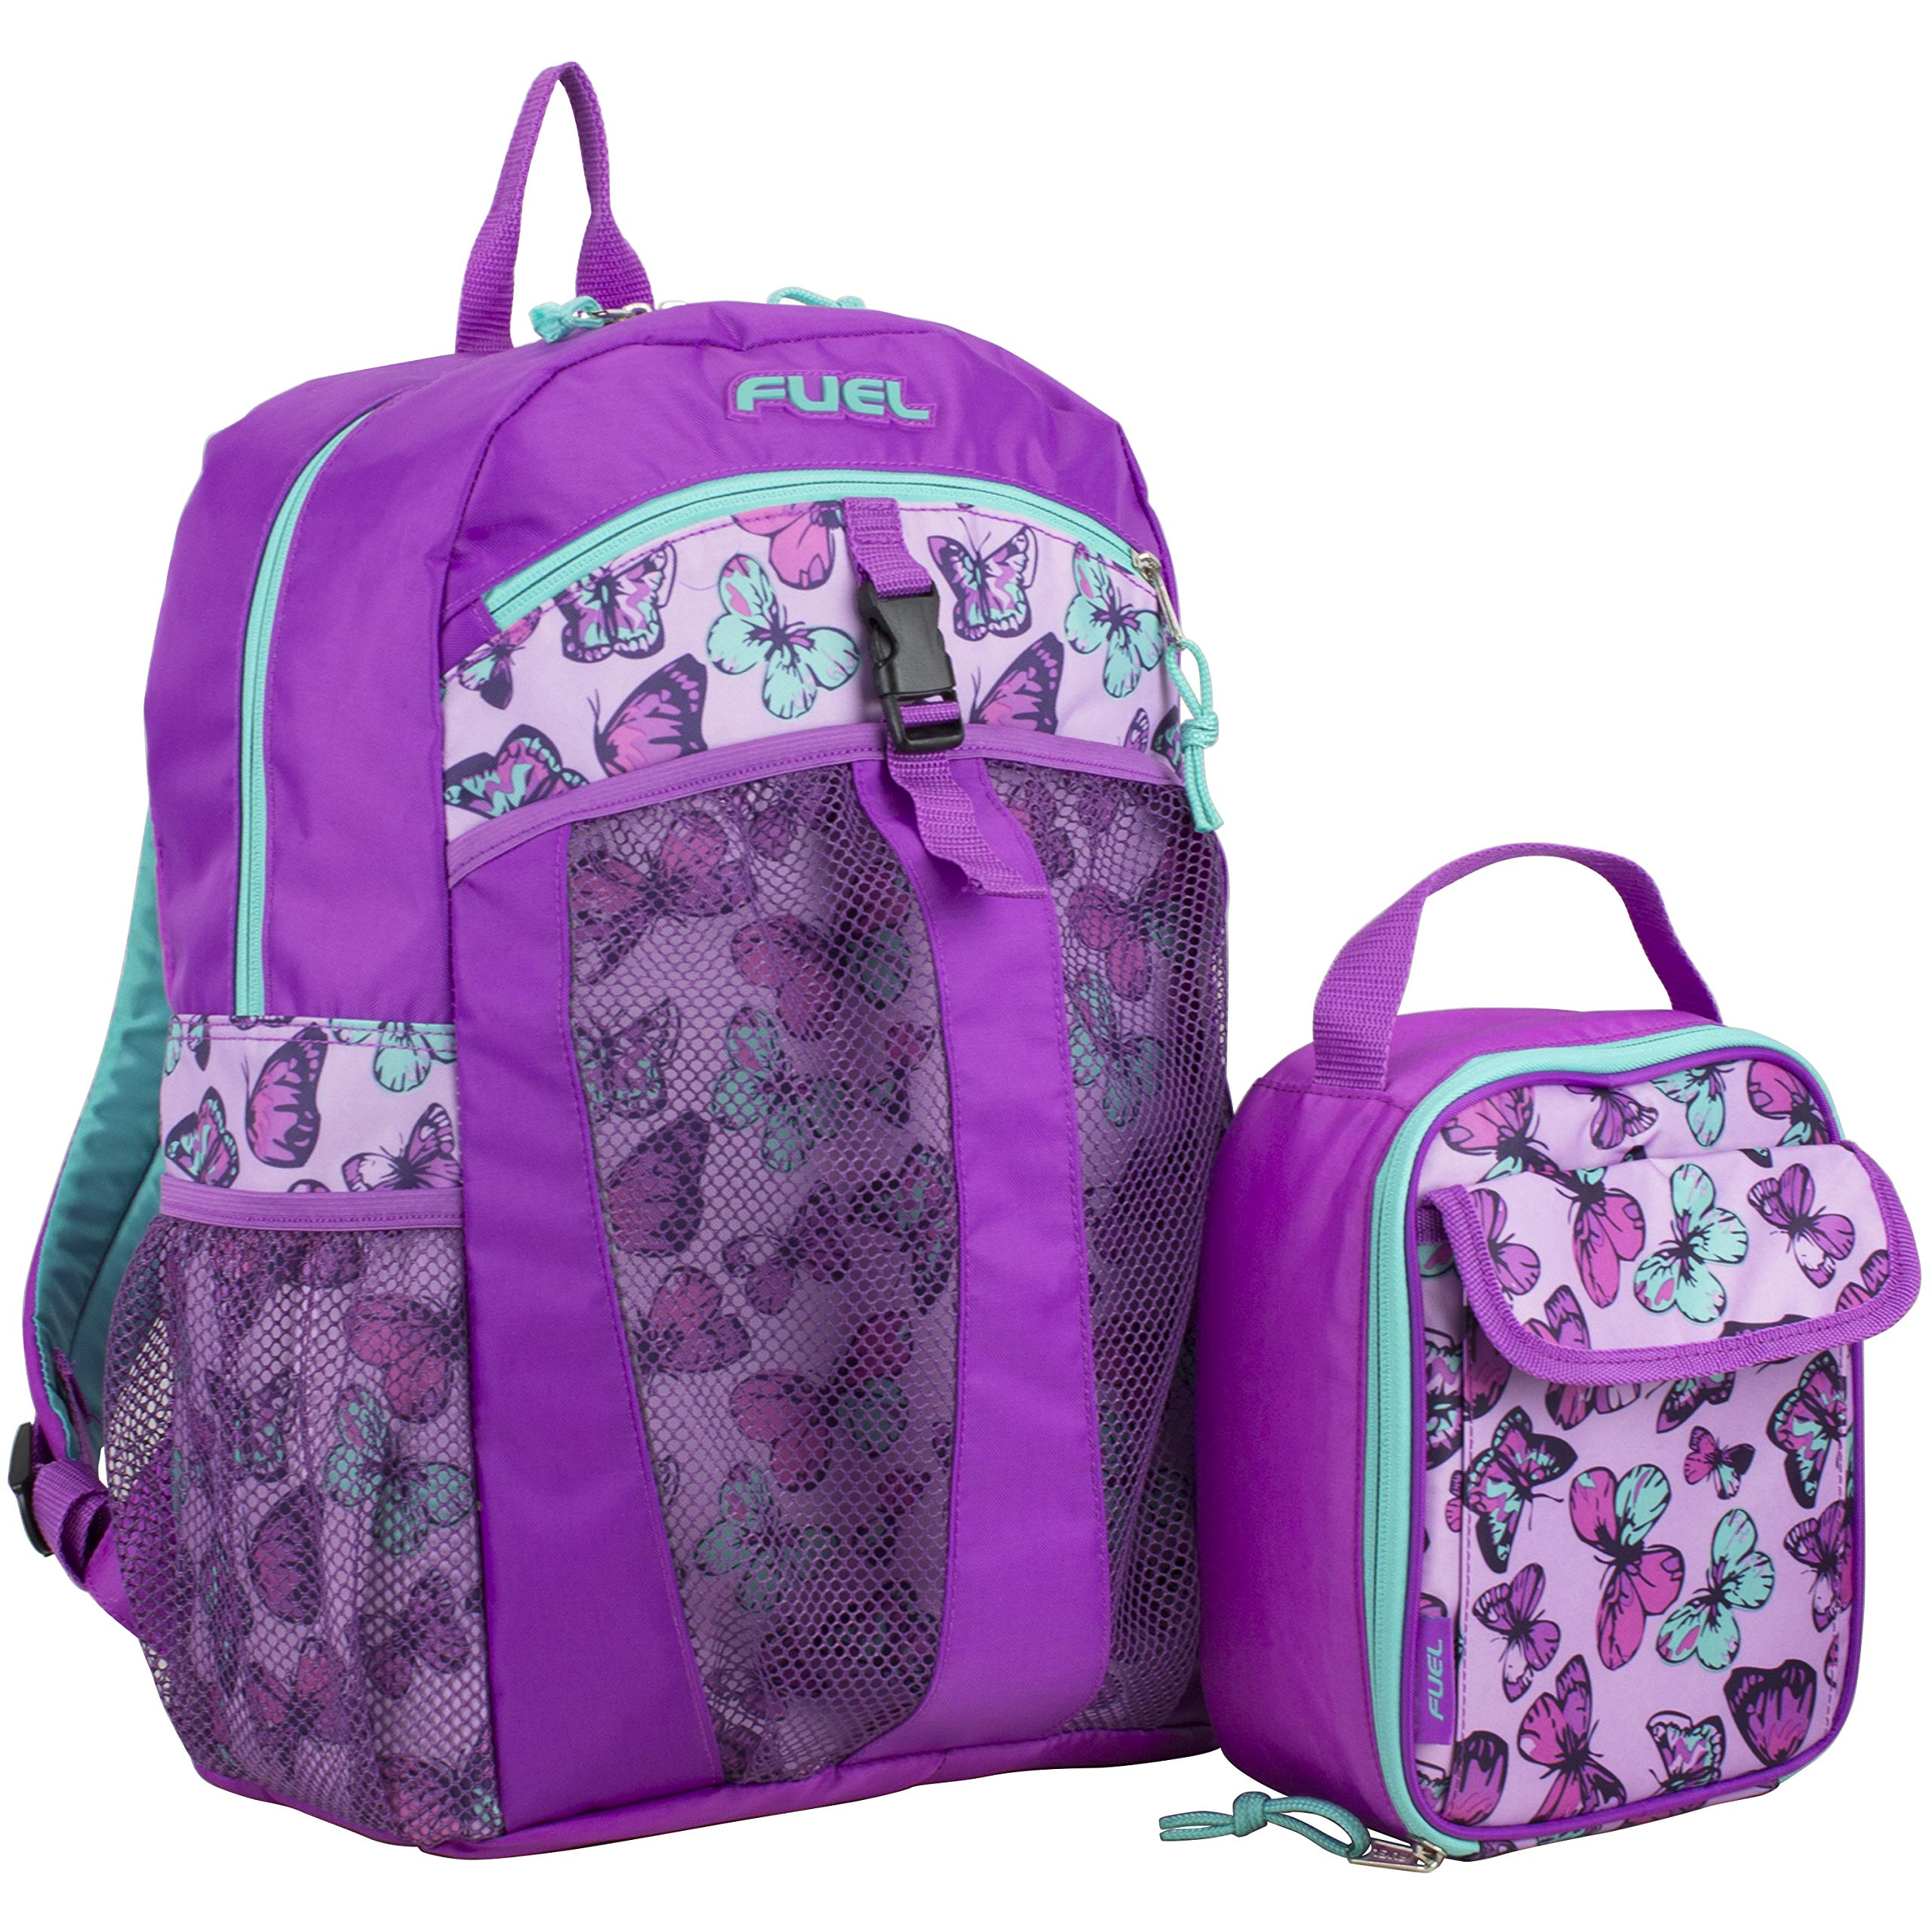 Fuel Backpack & Lunch Bag Bundle, Grape/Turqoise/Colorful Butterflies Print by Fuel